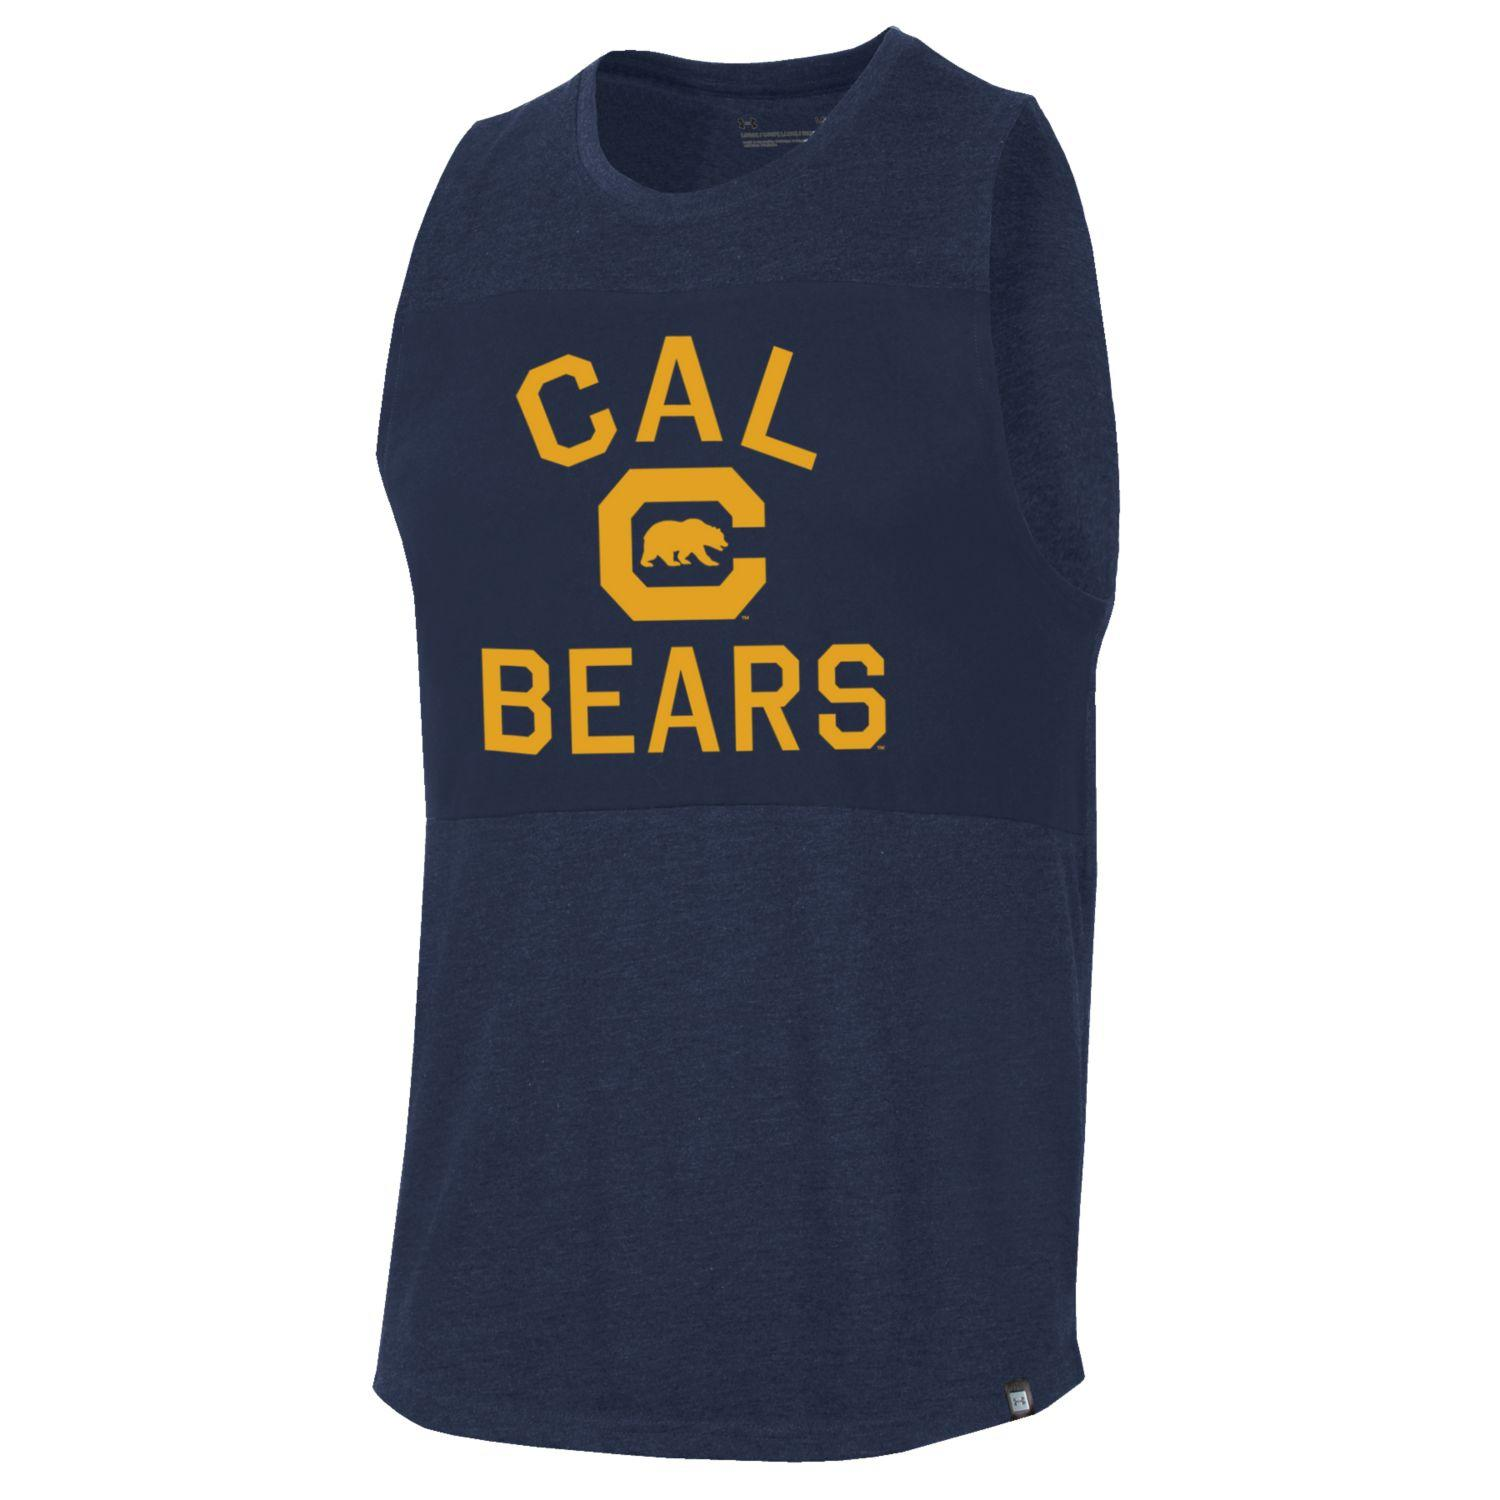 Cal Bears Under Armour Men's SMU Training Camp Tank